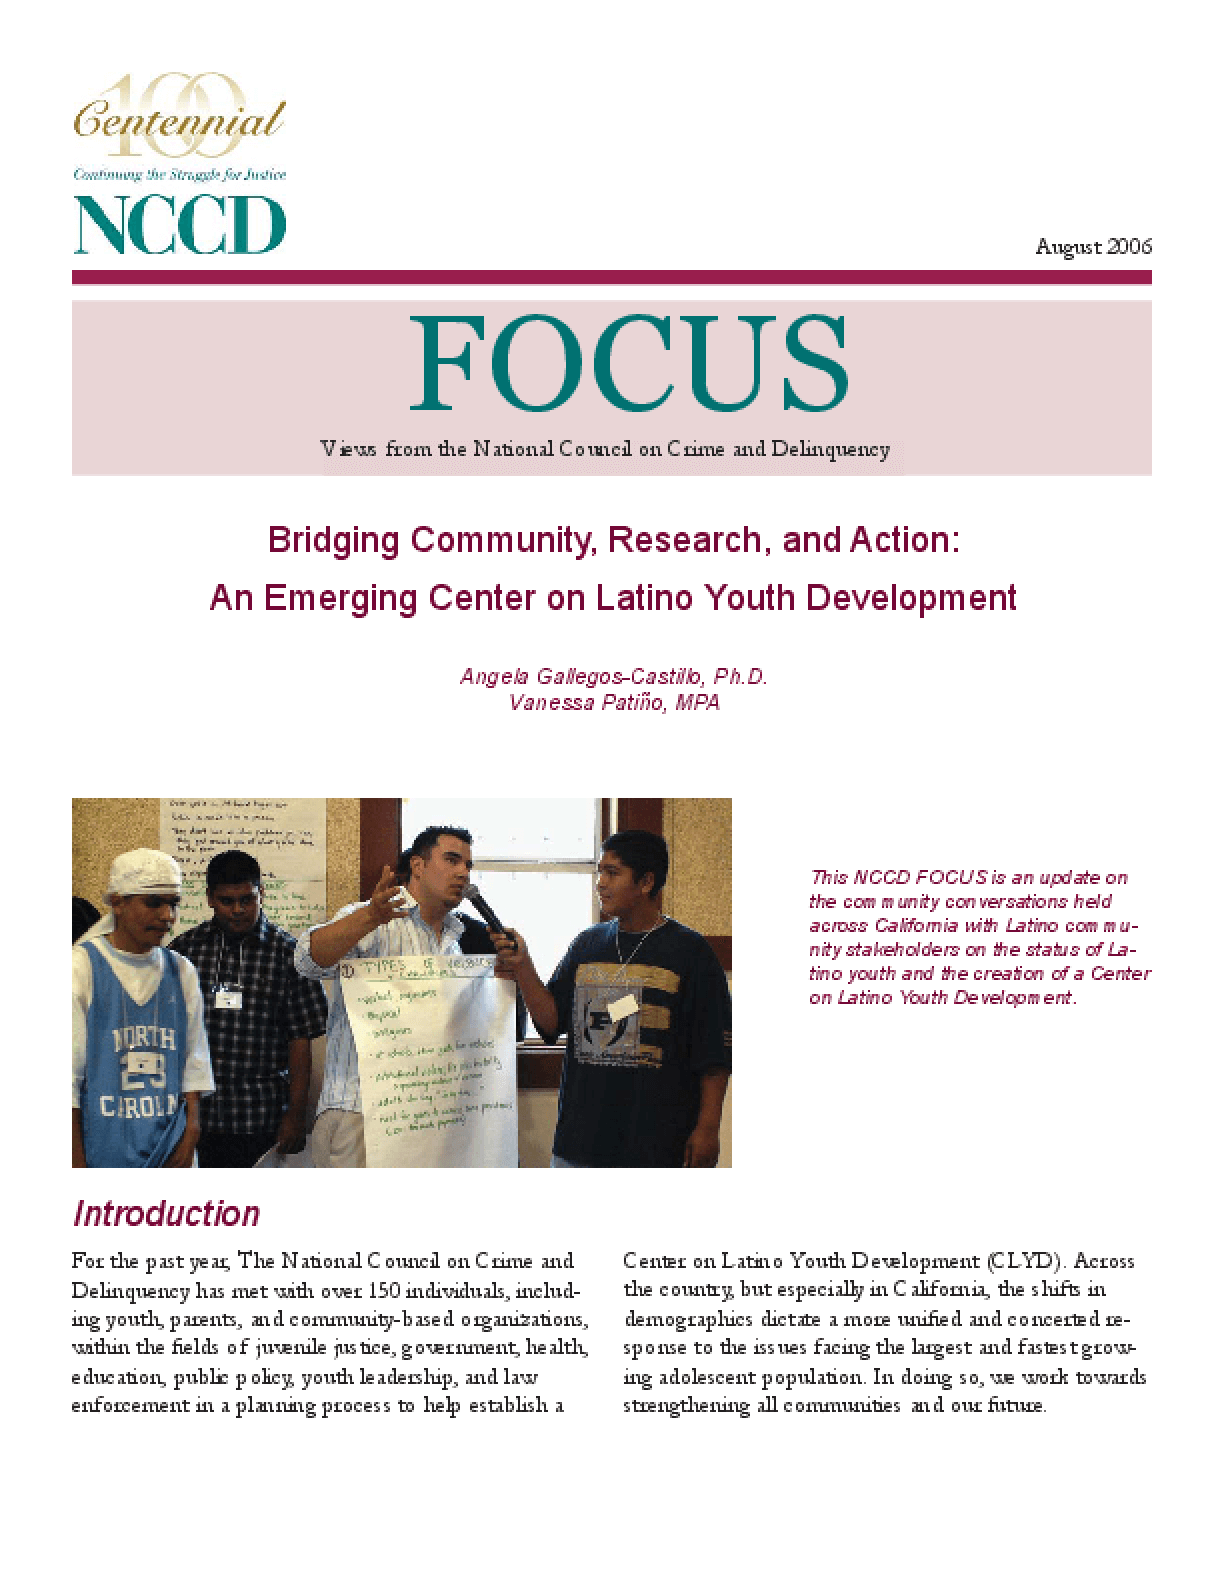 Bridging Community, Research, and Action: An Emerging Center on Latino Youth Development (FOCUS)